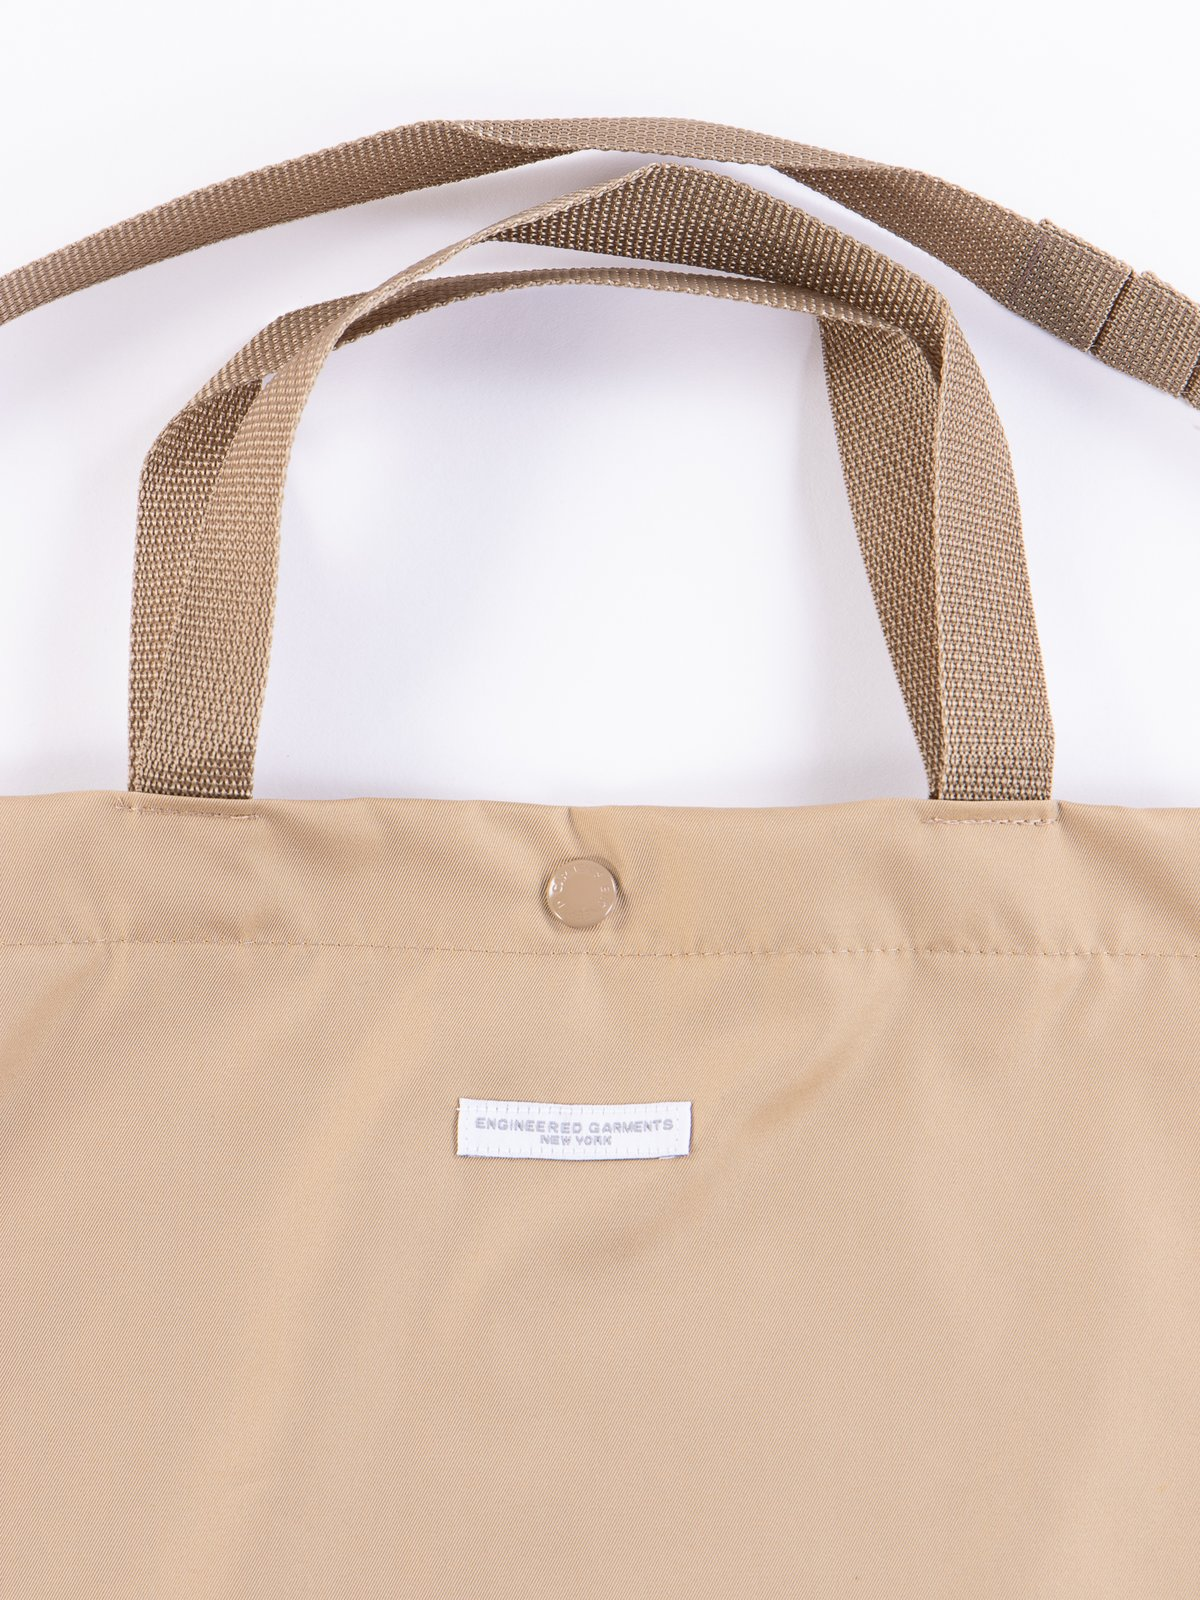 Khaki PC Iridescent Twill Carry All Tote - Image 3